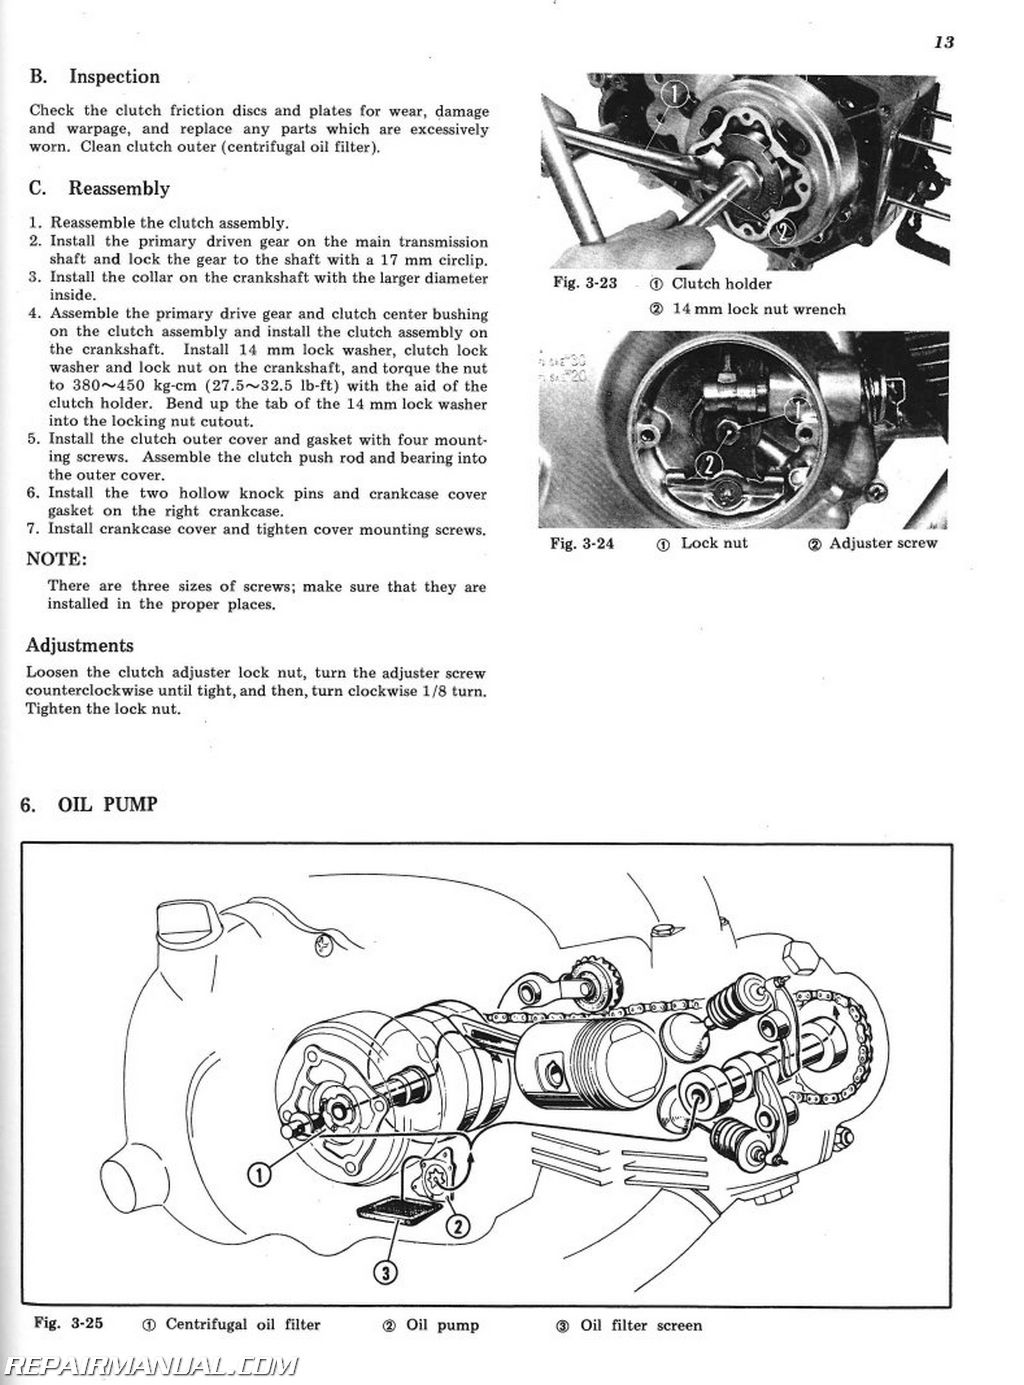 Honda Z50 K1 Wiring Diagram Worksheet And Crf50 Sl70 Experts Of U2022 Rh Evilcloud Co Uk Ns50